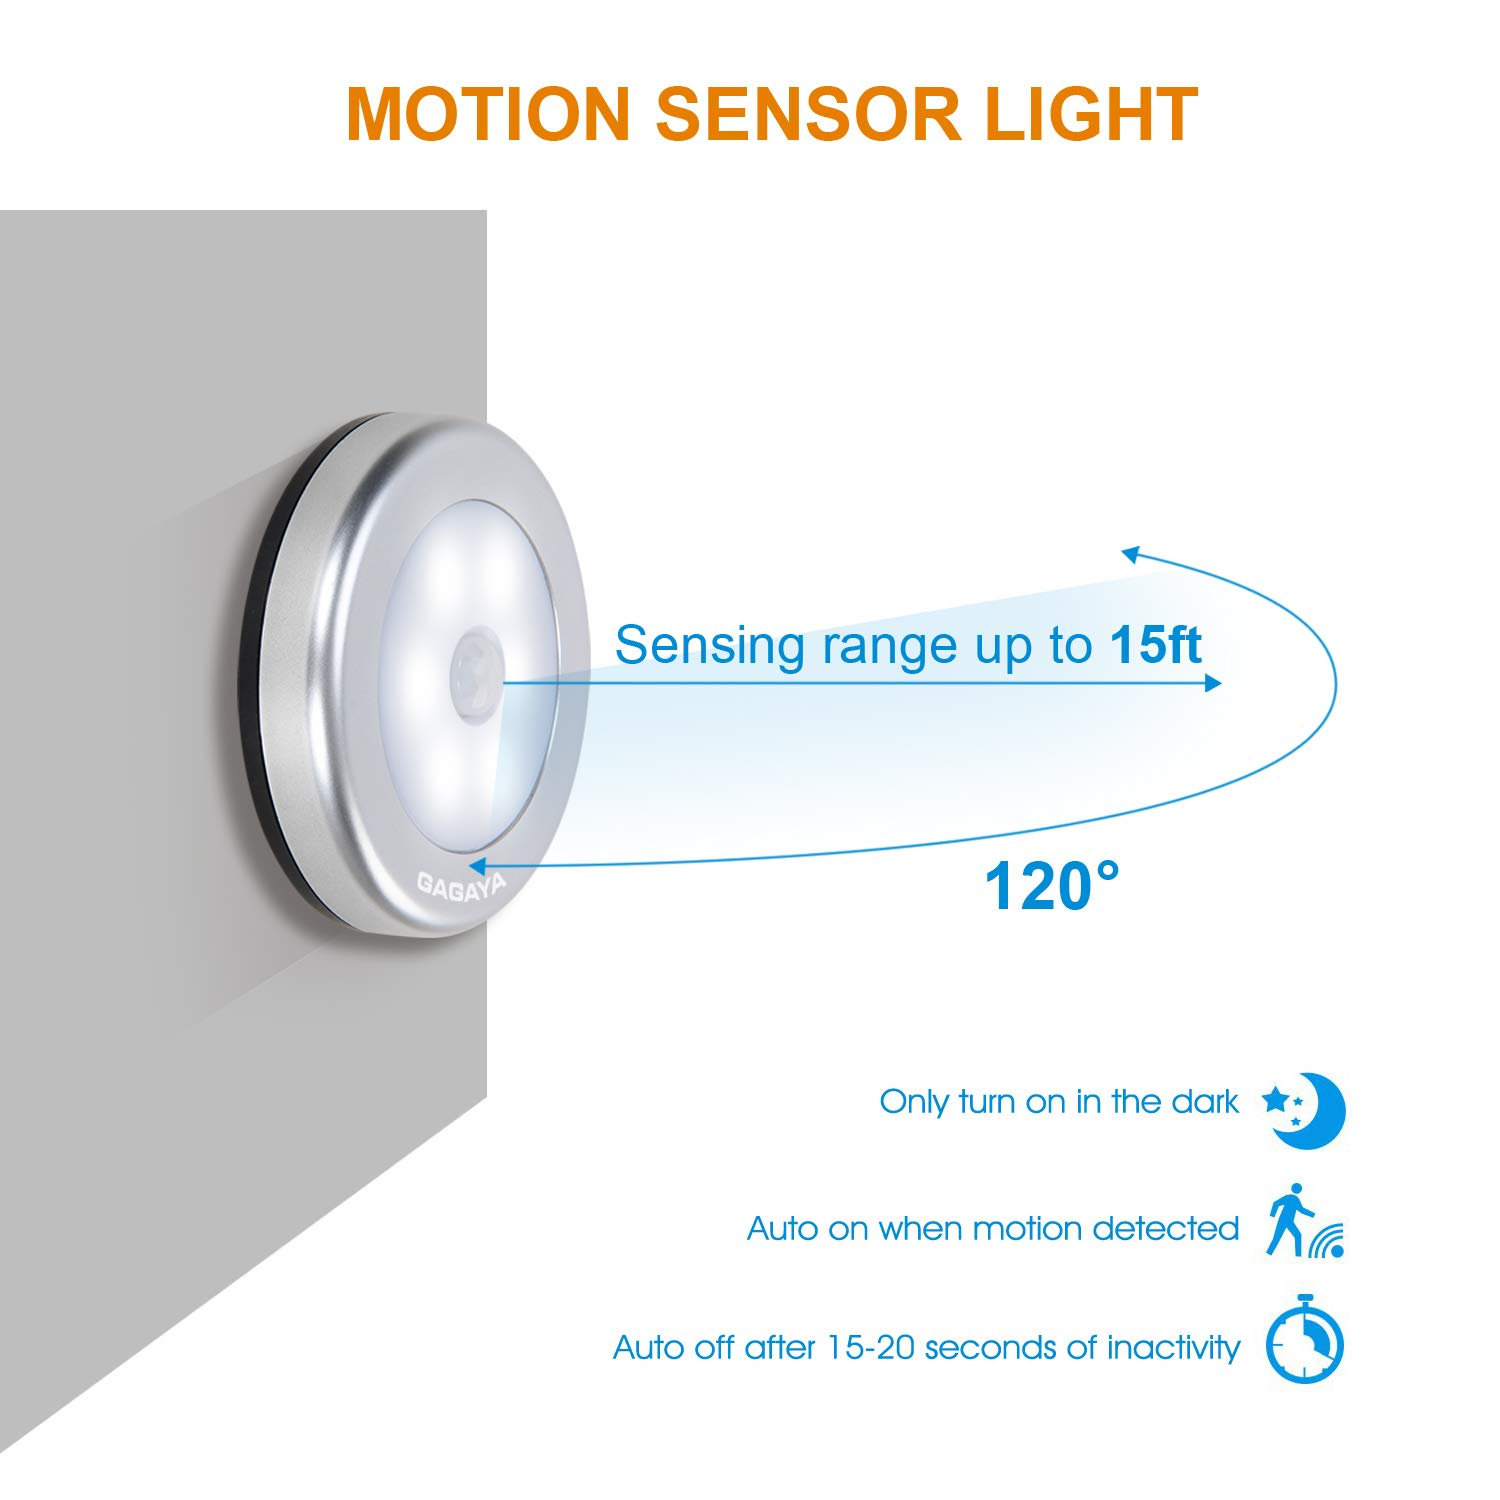 LED Motion Sensor Light Battery Operated, Closet Lights, Stick on Light for Closet, Hallway, Stair, Step, Cabinet, Kitchen, Garage, Bathroom, Wireless Wall Lamp for Home Indoor 6-Pack White Light